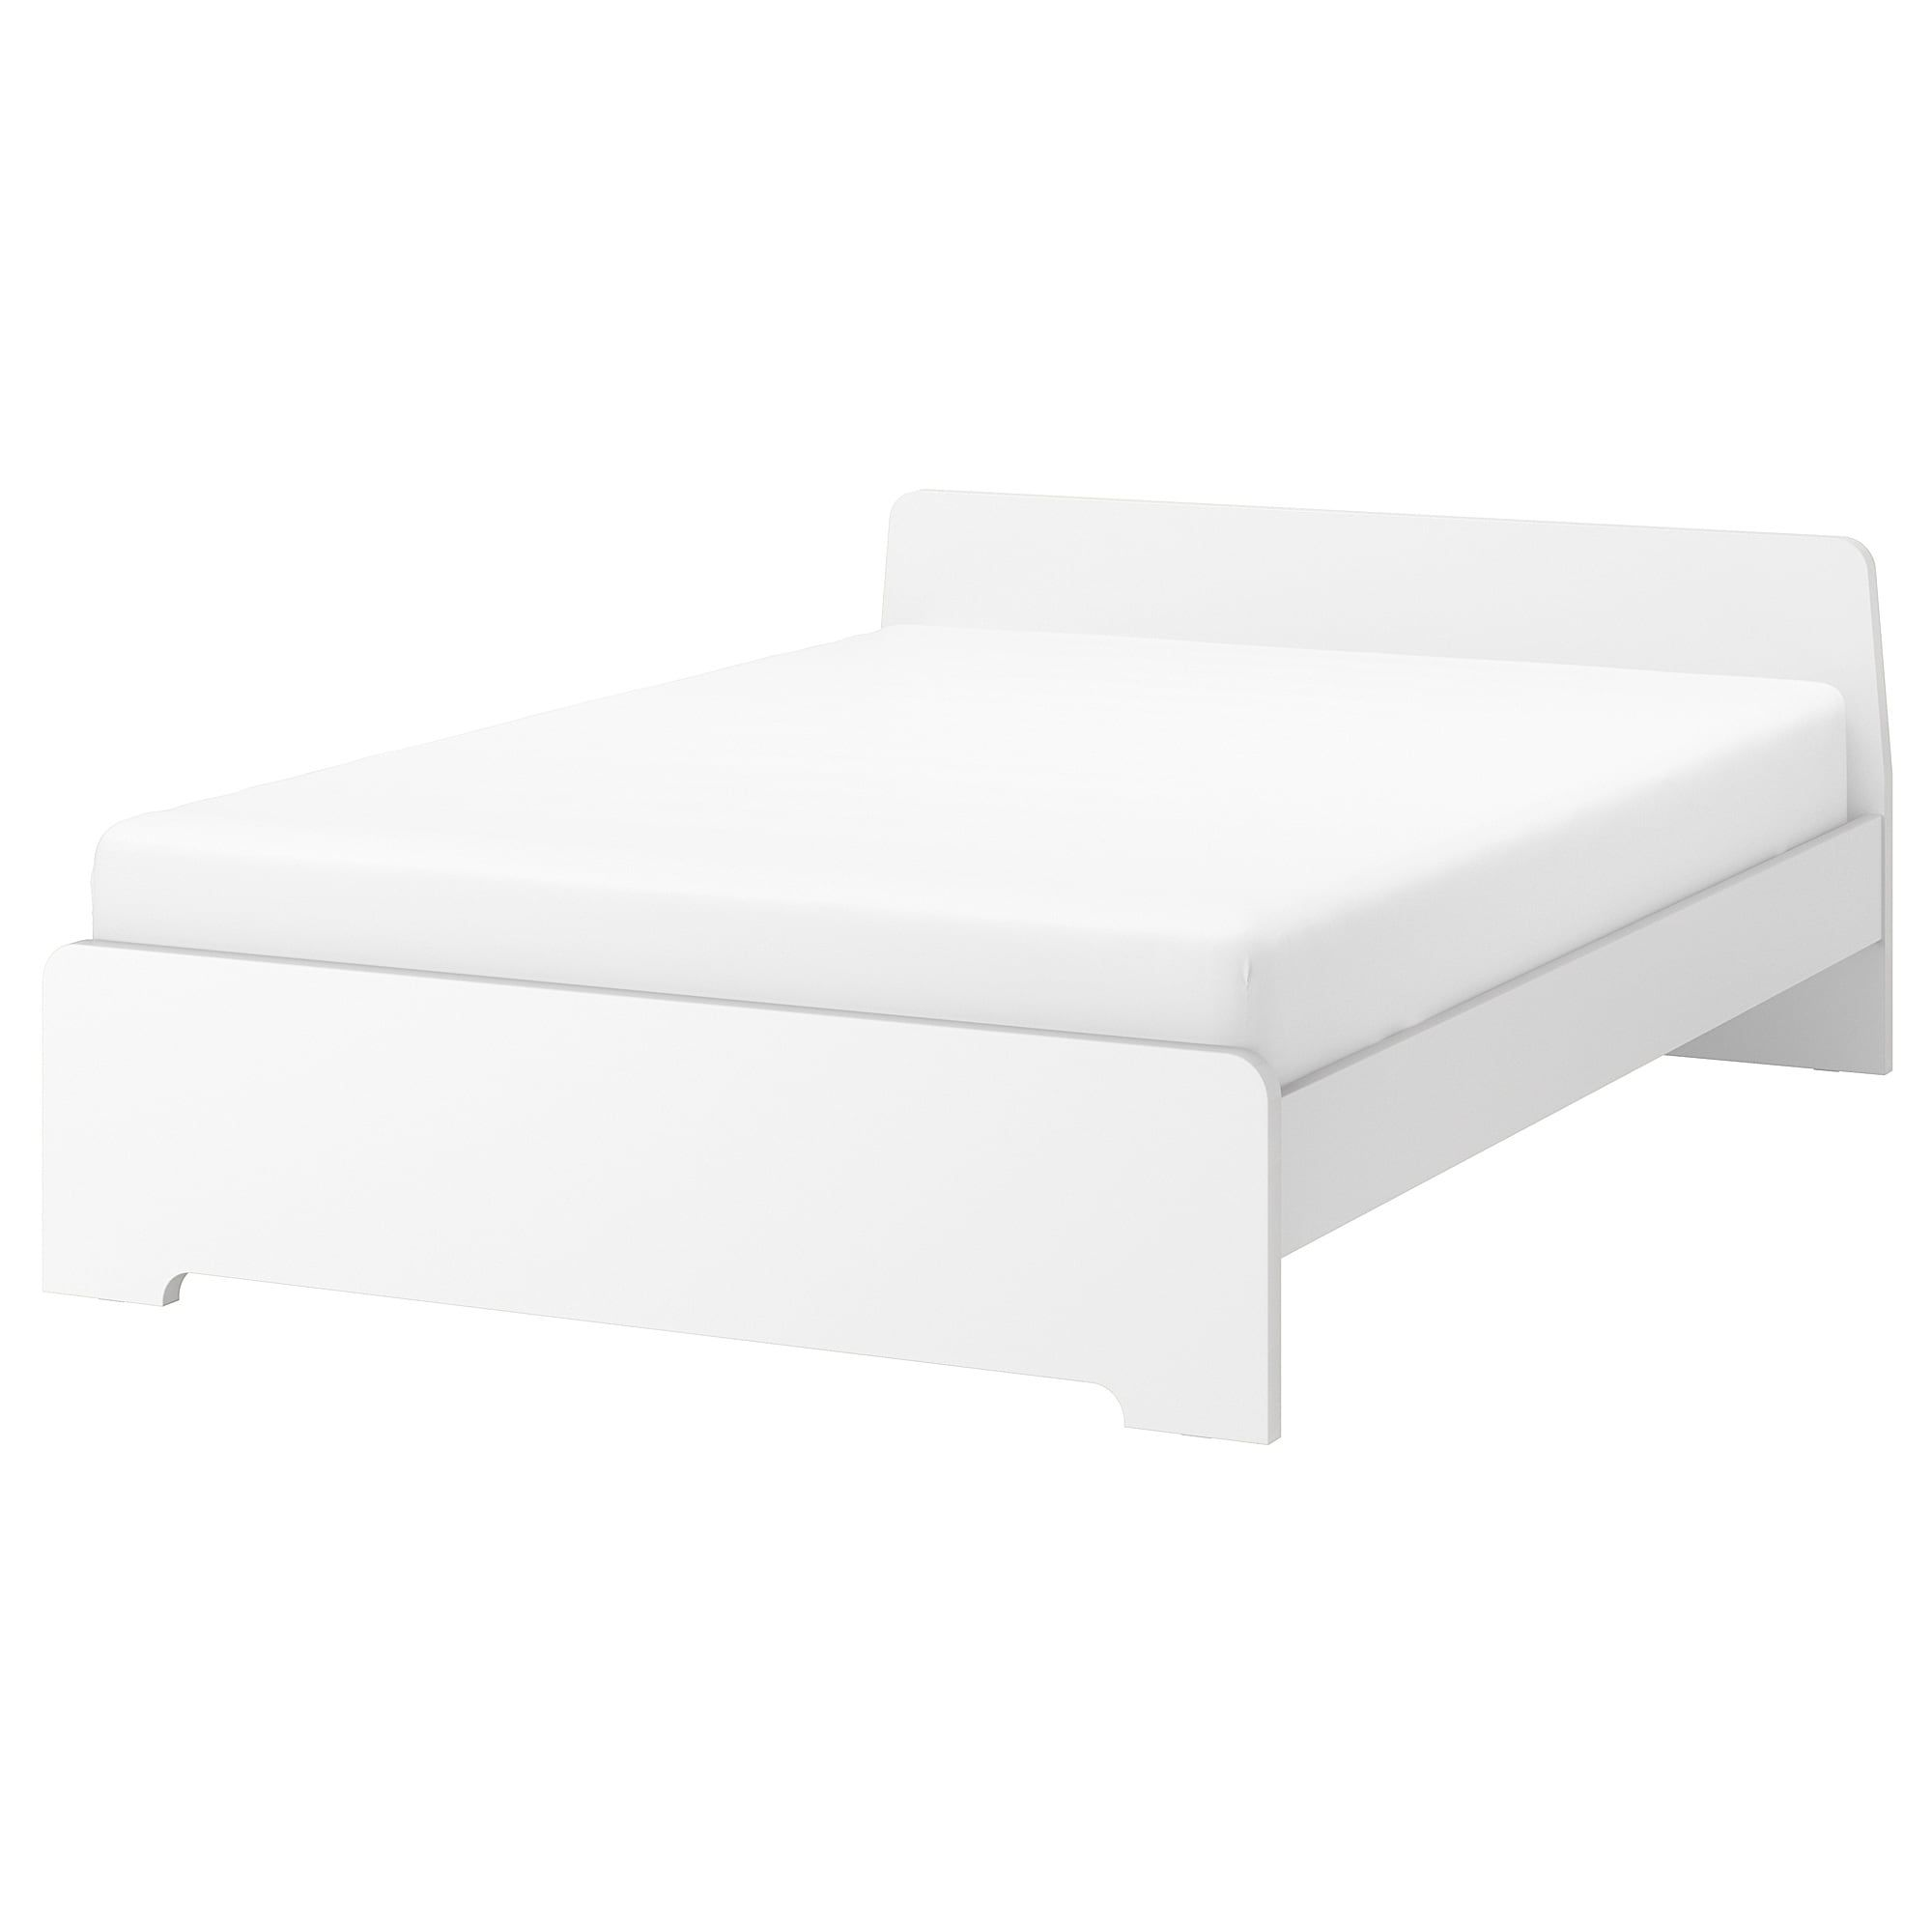 Askvoll Bedframe Wit Luroy 140x200 Cm Ikea In 2020 Bed Frame With Storage Bed Frame Malm Bed Frame